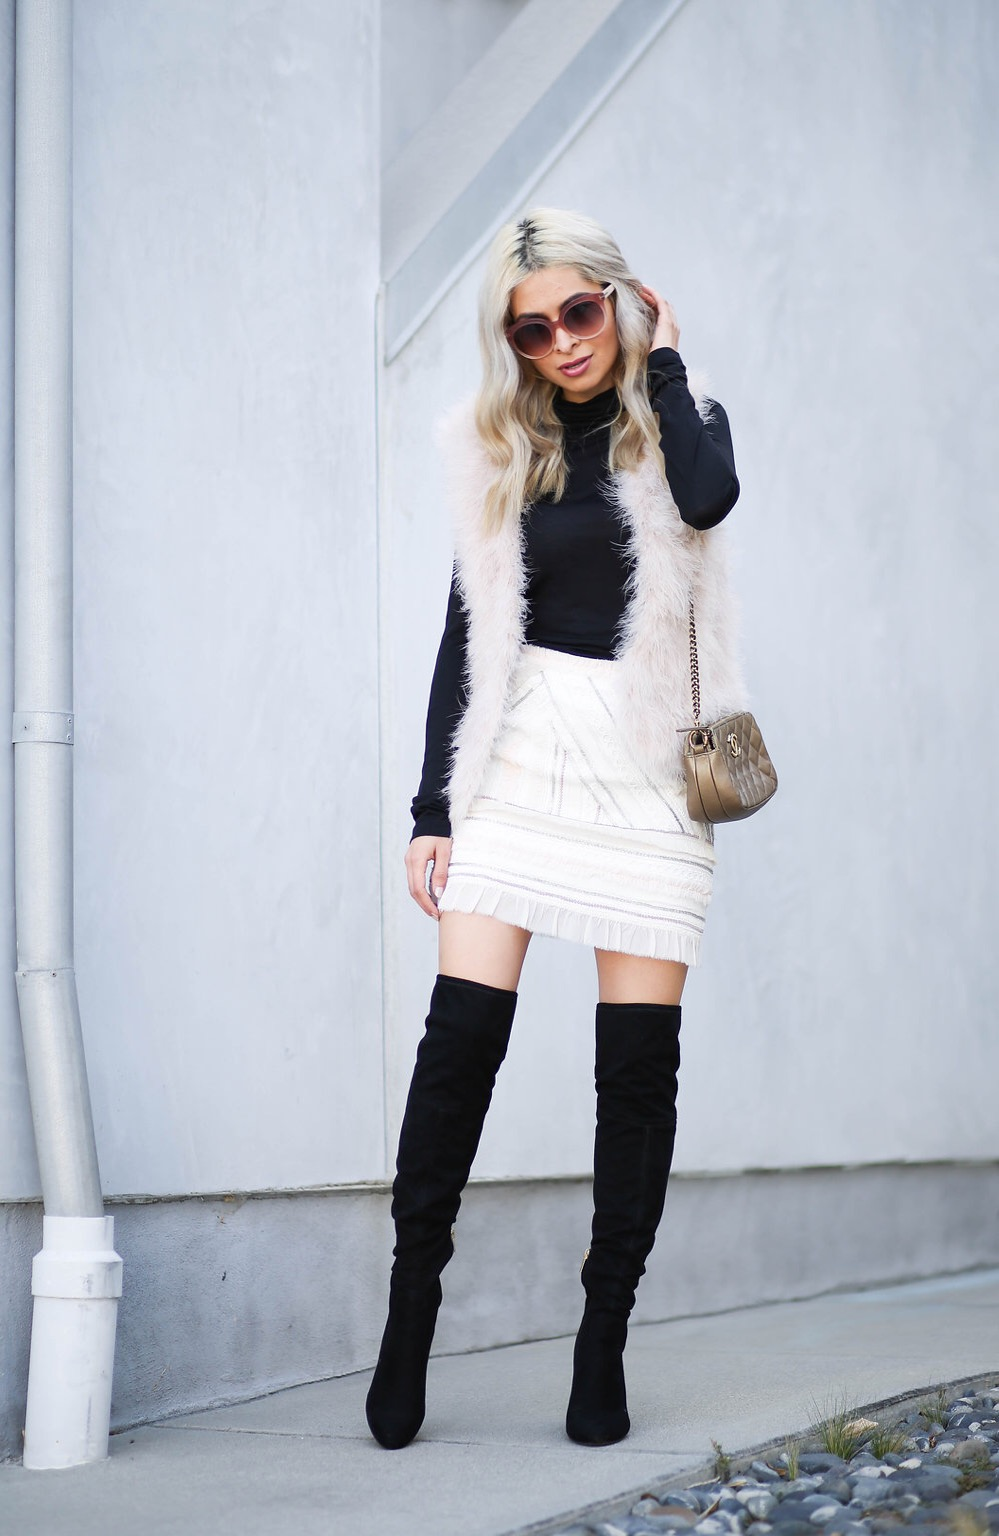 club monaco skirt_club monaco furry vest_fuzzy vest_blush colored top_blush colored skirt_sequined skirt_otk books_otk black boots_over the knee boots_tom ford_tom ford inauguration_black turtleneck_steve jobs outfit